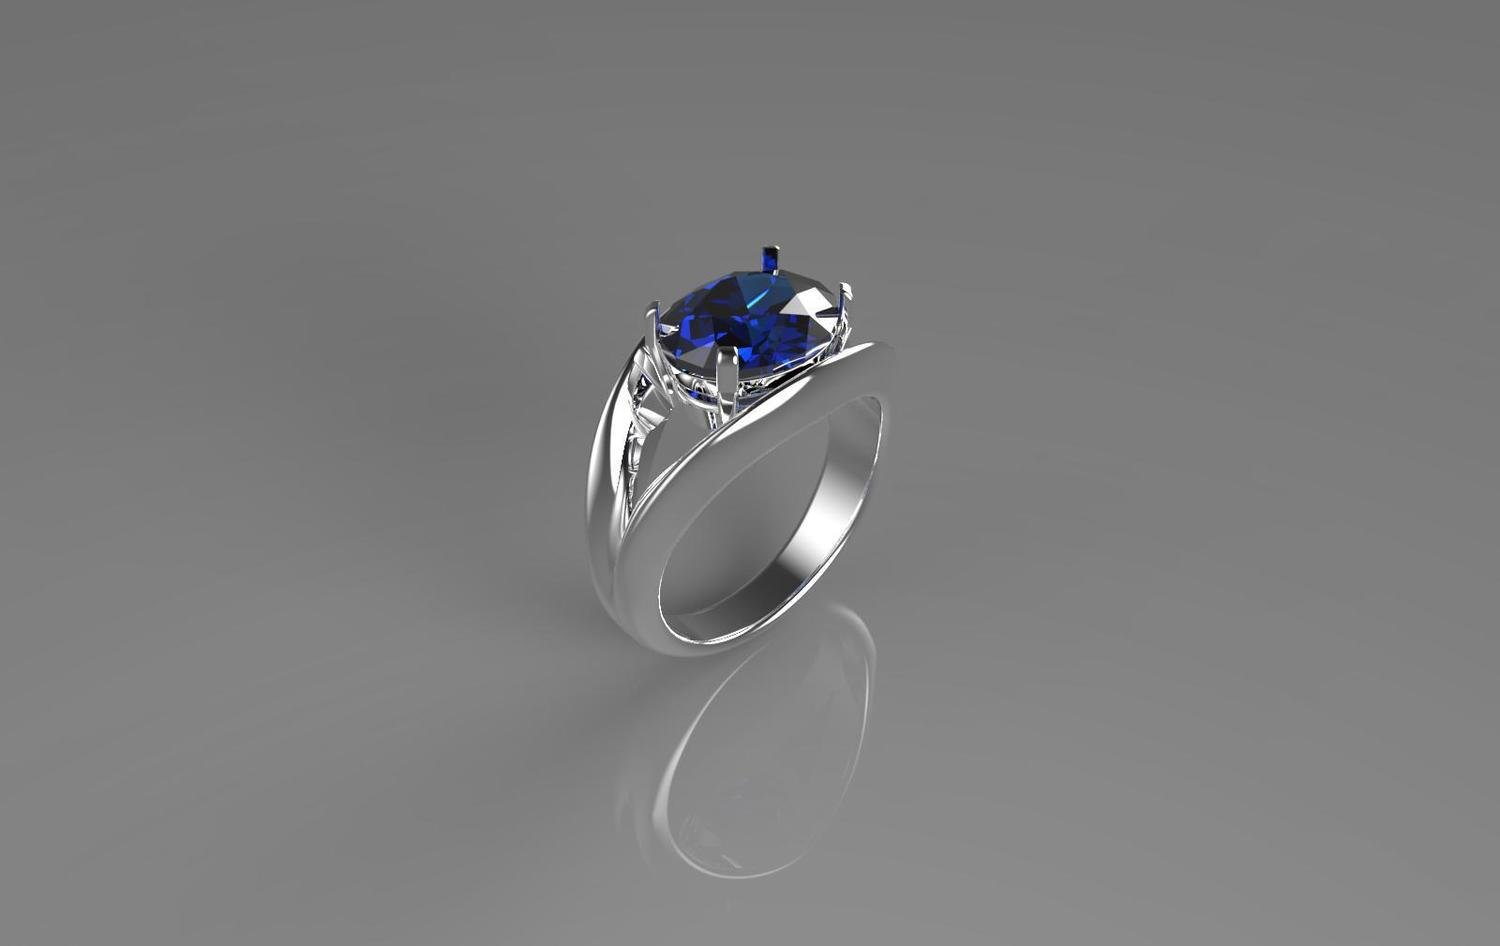 3D CAD Model of Engagement Ring with Sapphire